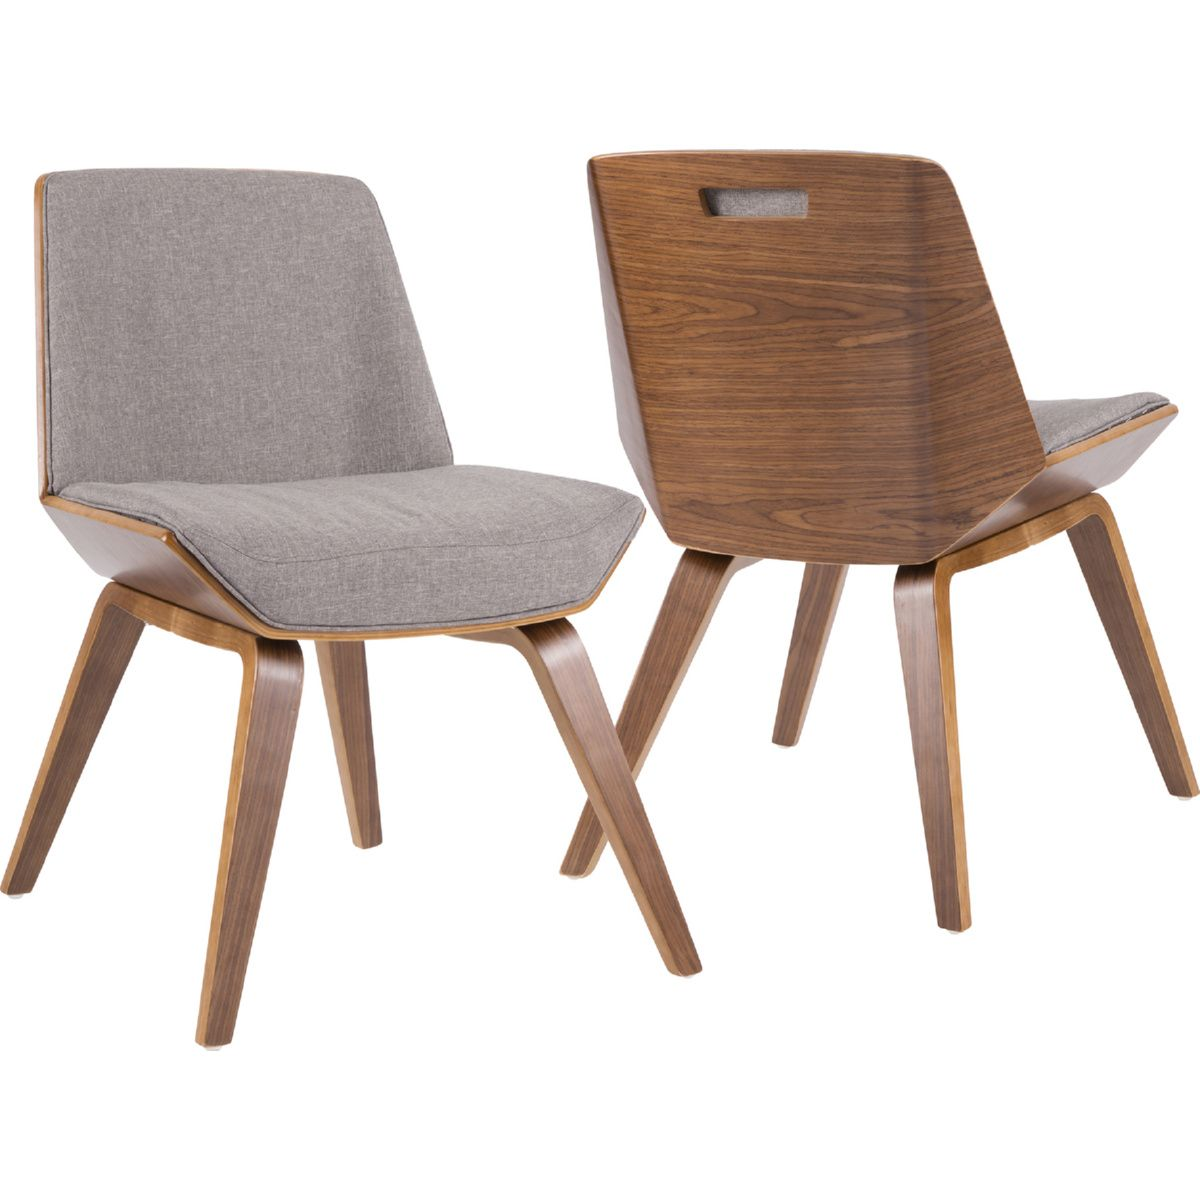 Phenomenal Corazza Dining Accent Chair In Grey Fabric On Walnut Legs By Ncnpc Chair Design For Home Ncnpcorg